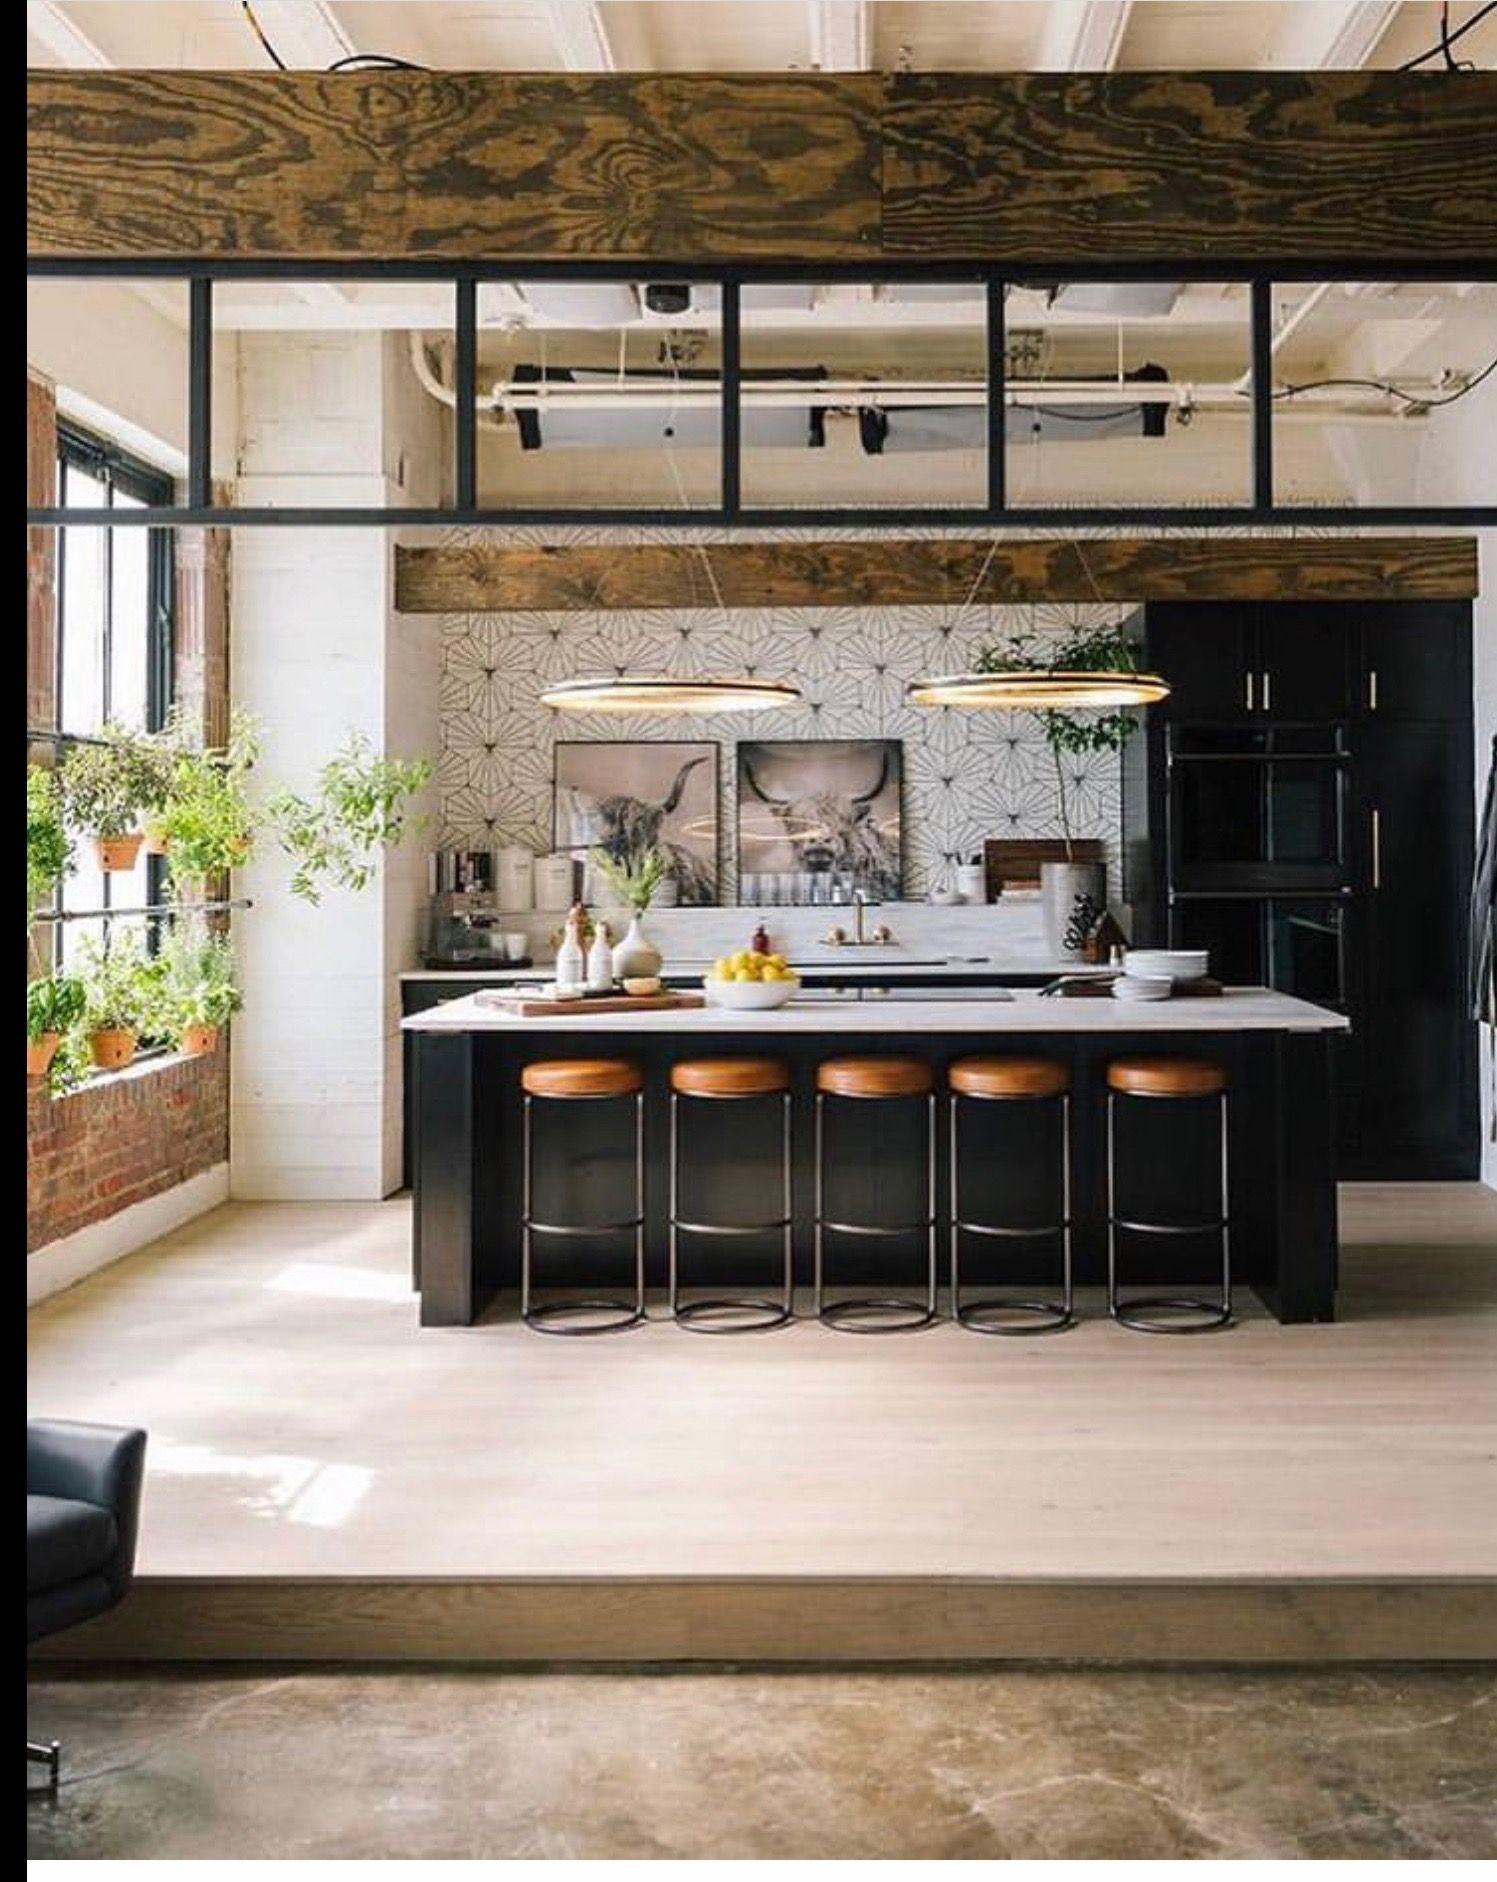 pin by tracy quillian on unique home loft kitchen on awesome modern kitchen design ideas id=28194